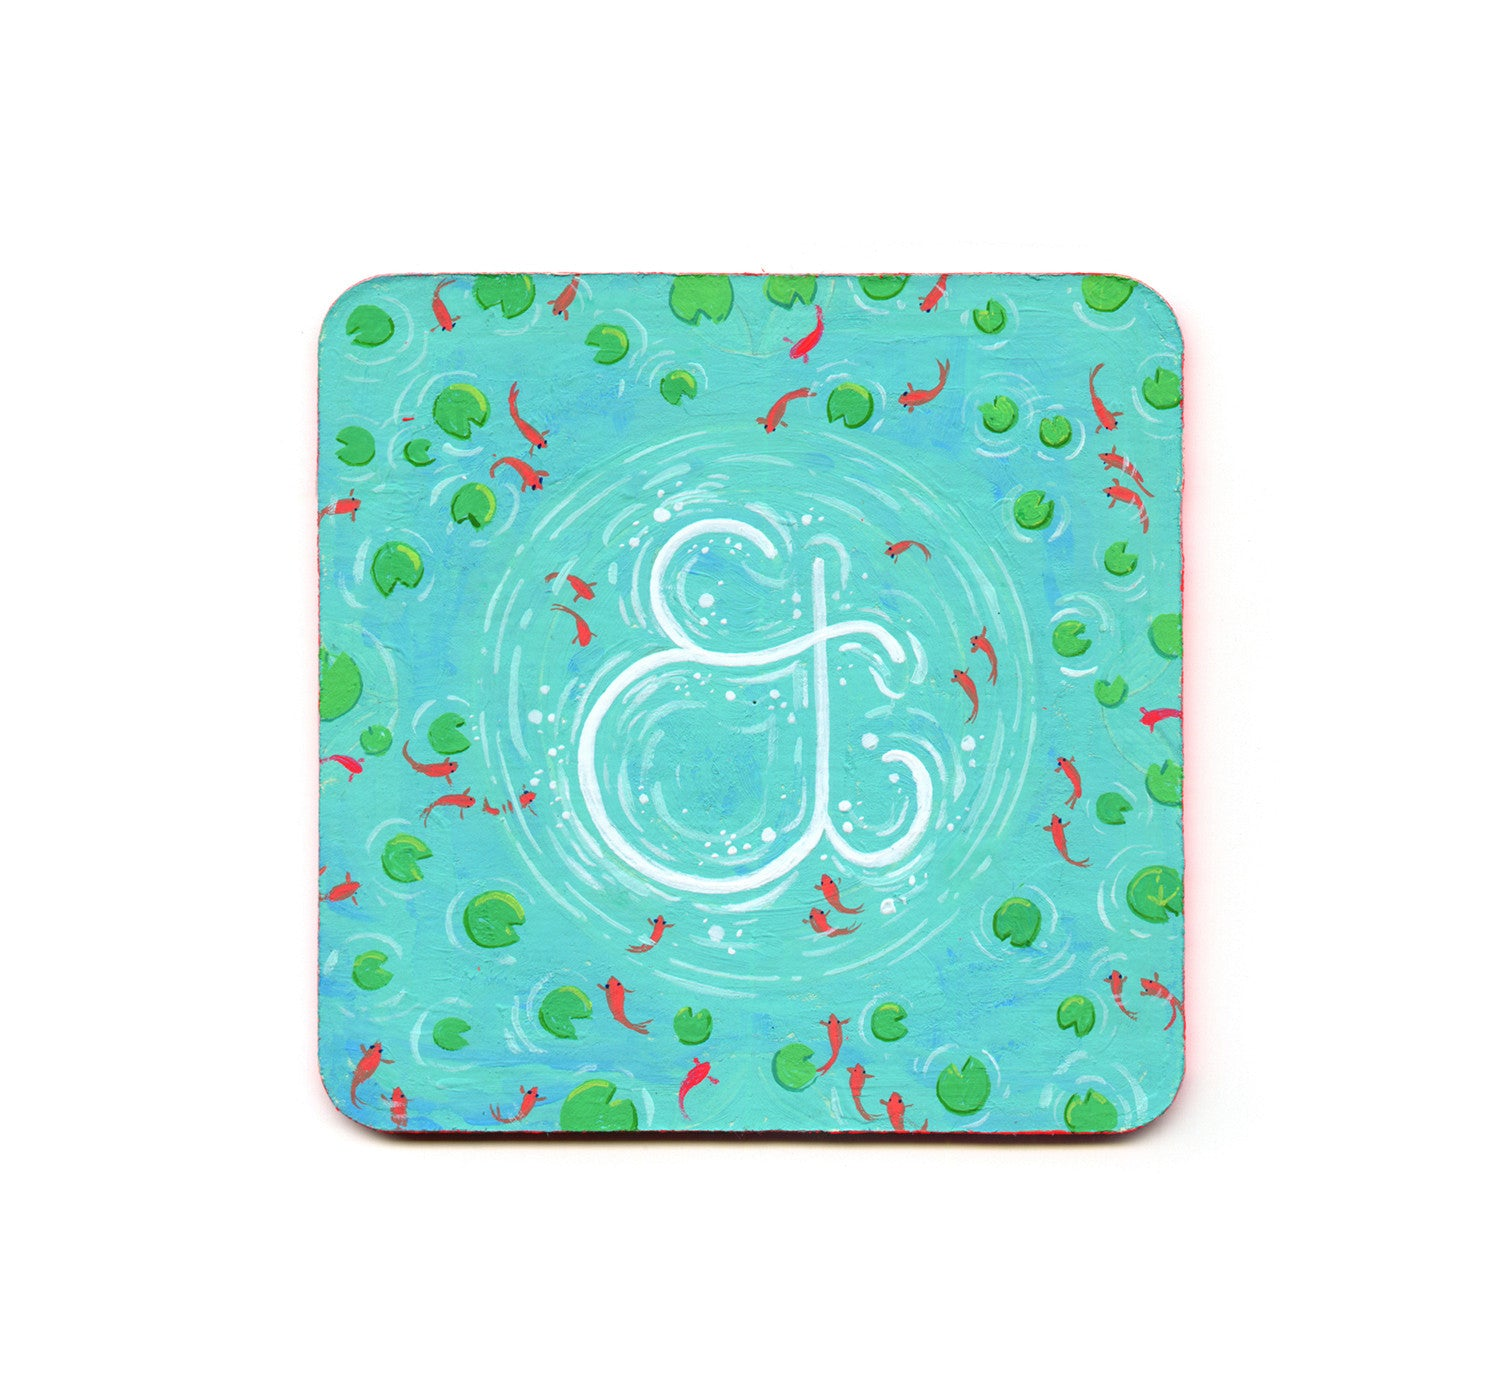 Xian Qing Chen - Ampersand in a Pond Coaster